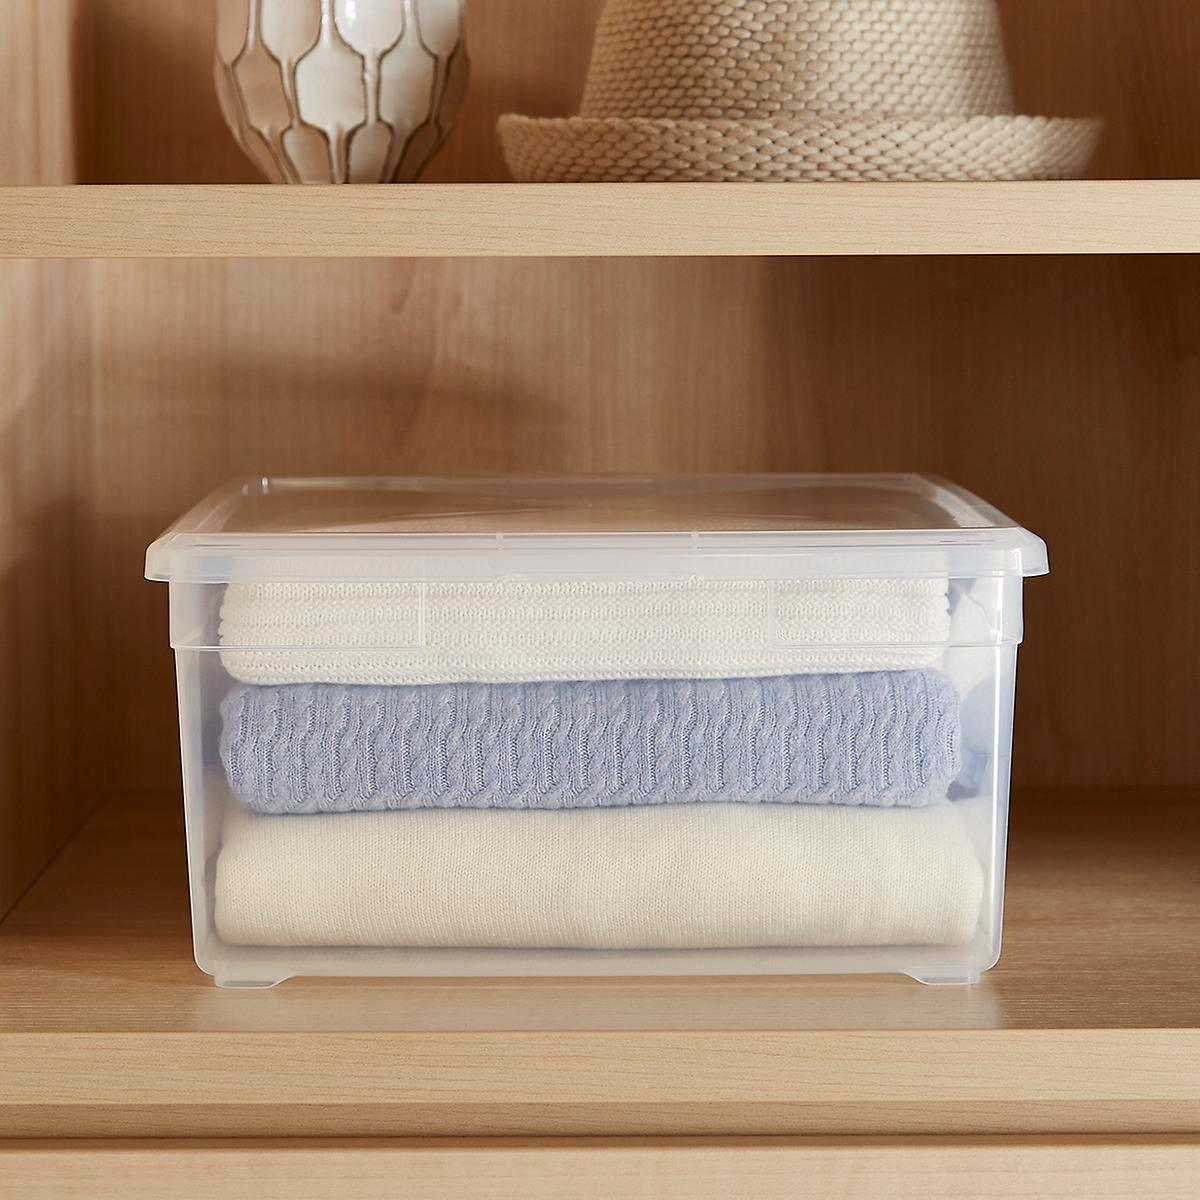 Sweater Box, $6.50 at The Container Store - The Container Store has excellent simple plastic storage boxes in many sizes!